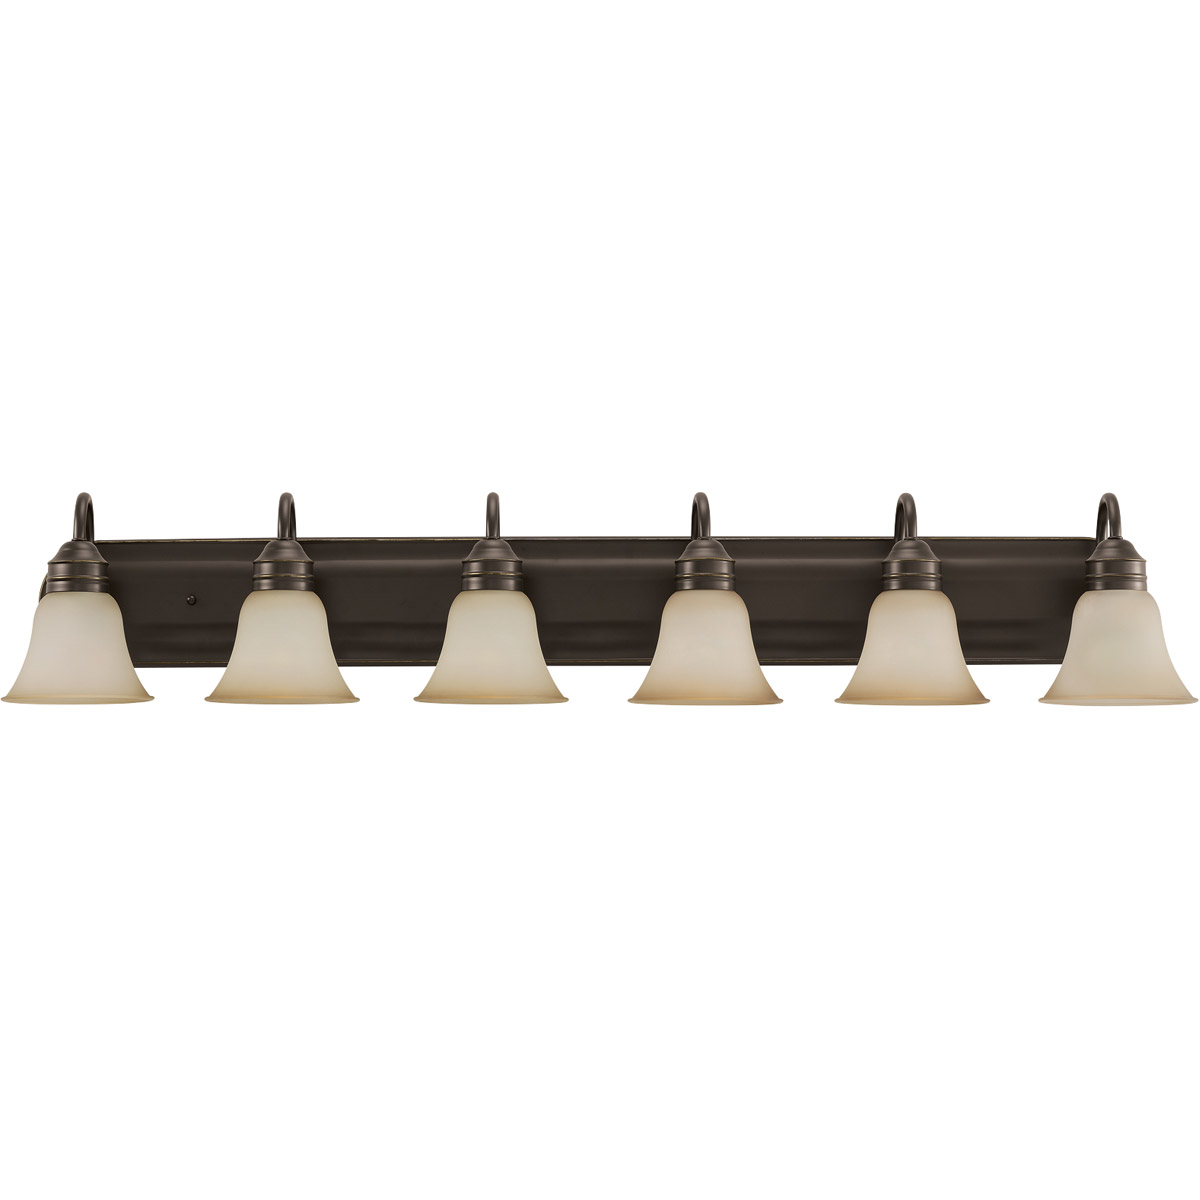 Sea Gull Lighting Gladstone 6 Light Bath Vanity in Heirloom Bronze 44855-782